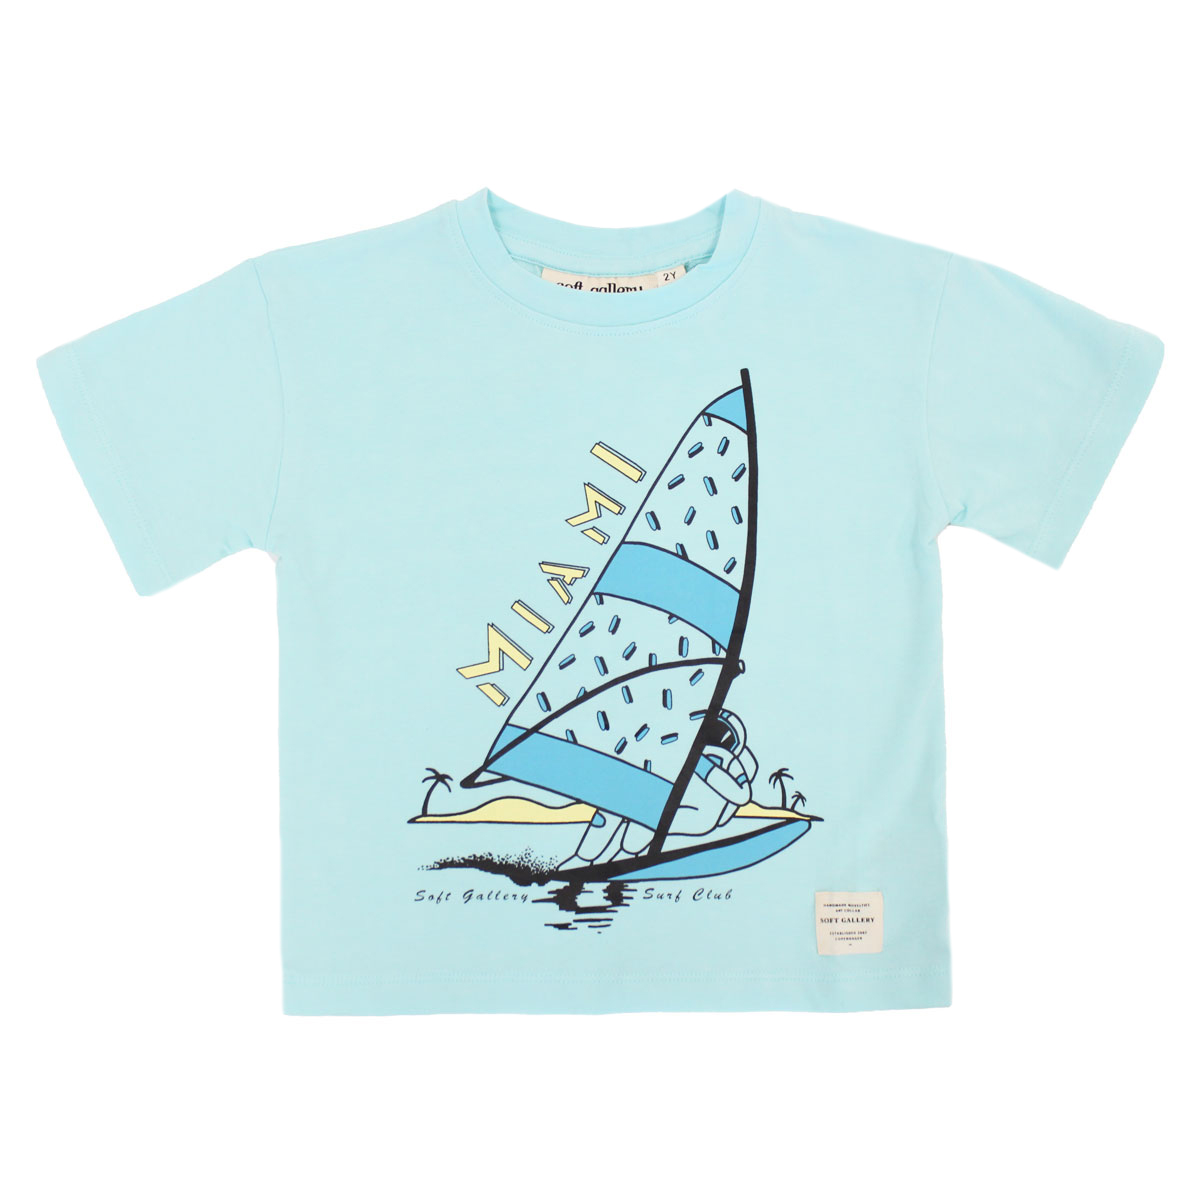 Soft Gallery Asger T-Shirt in Miami Blue